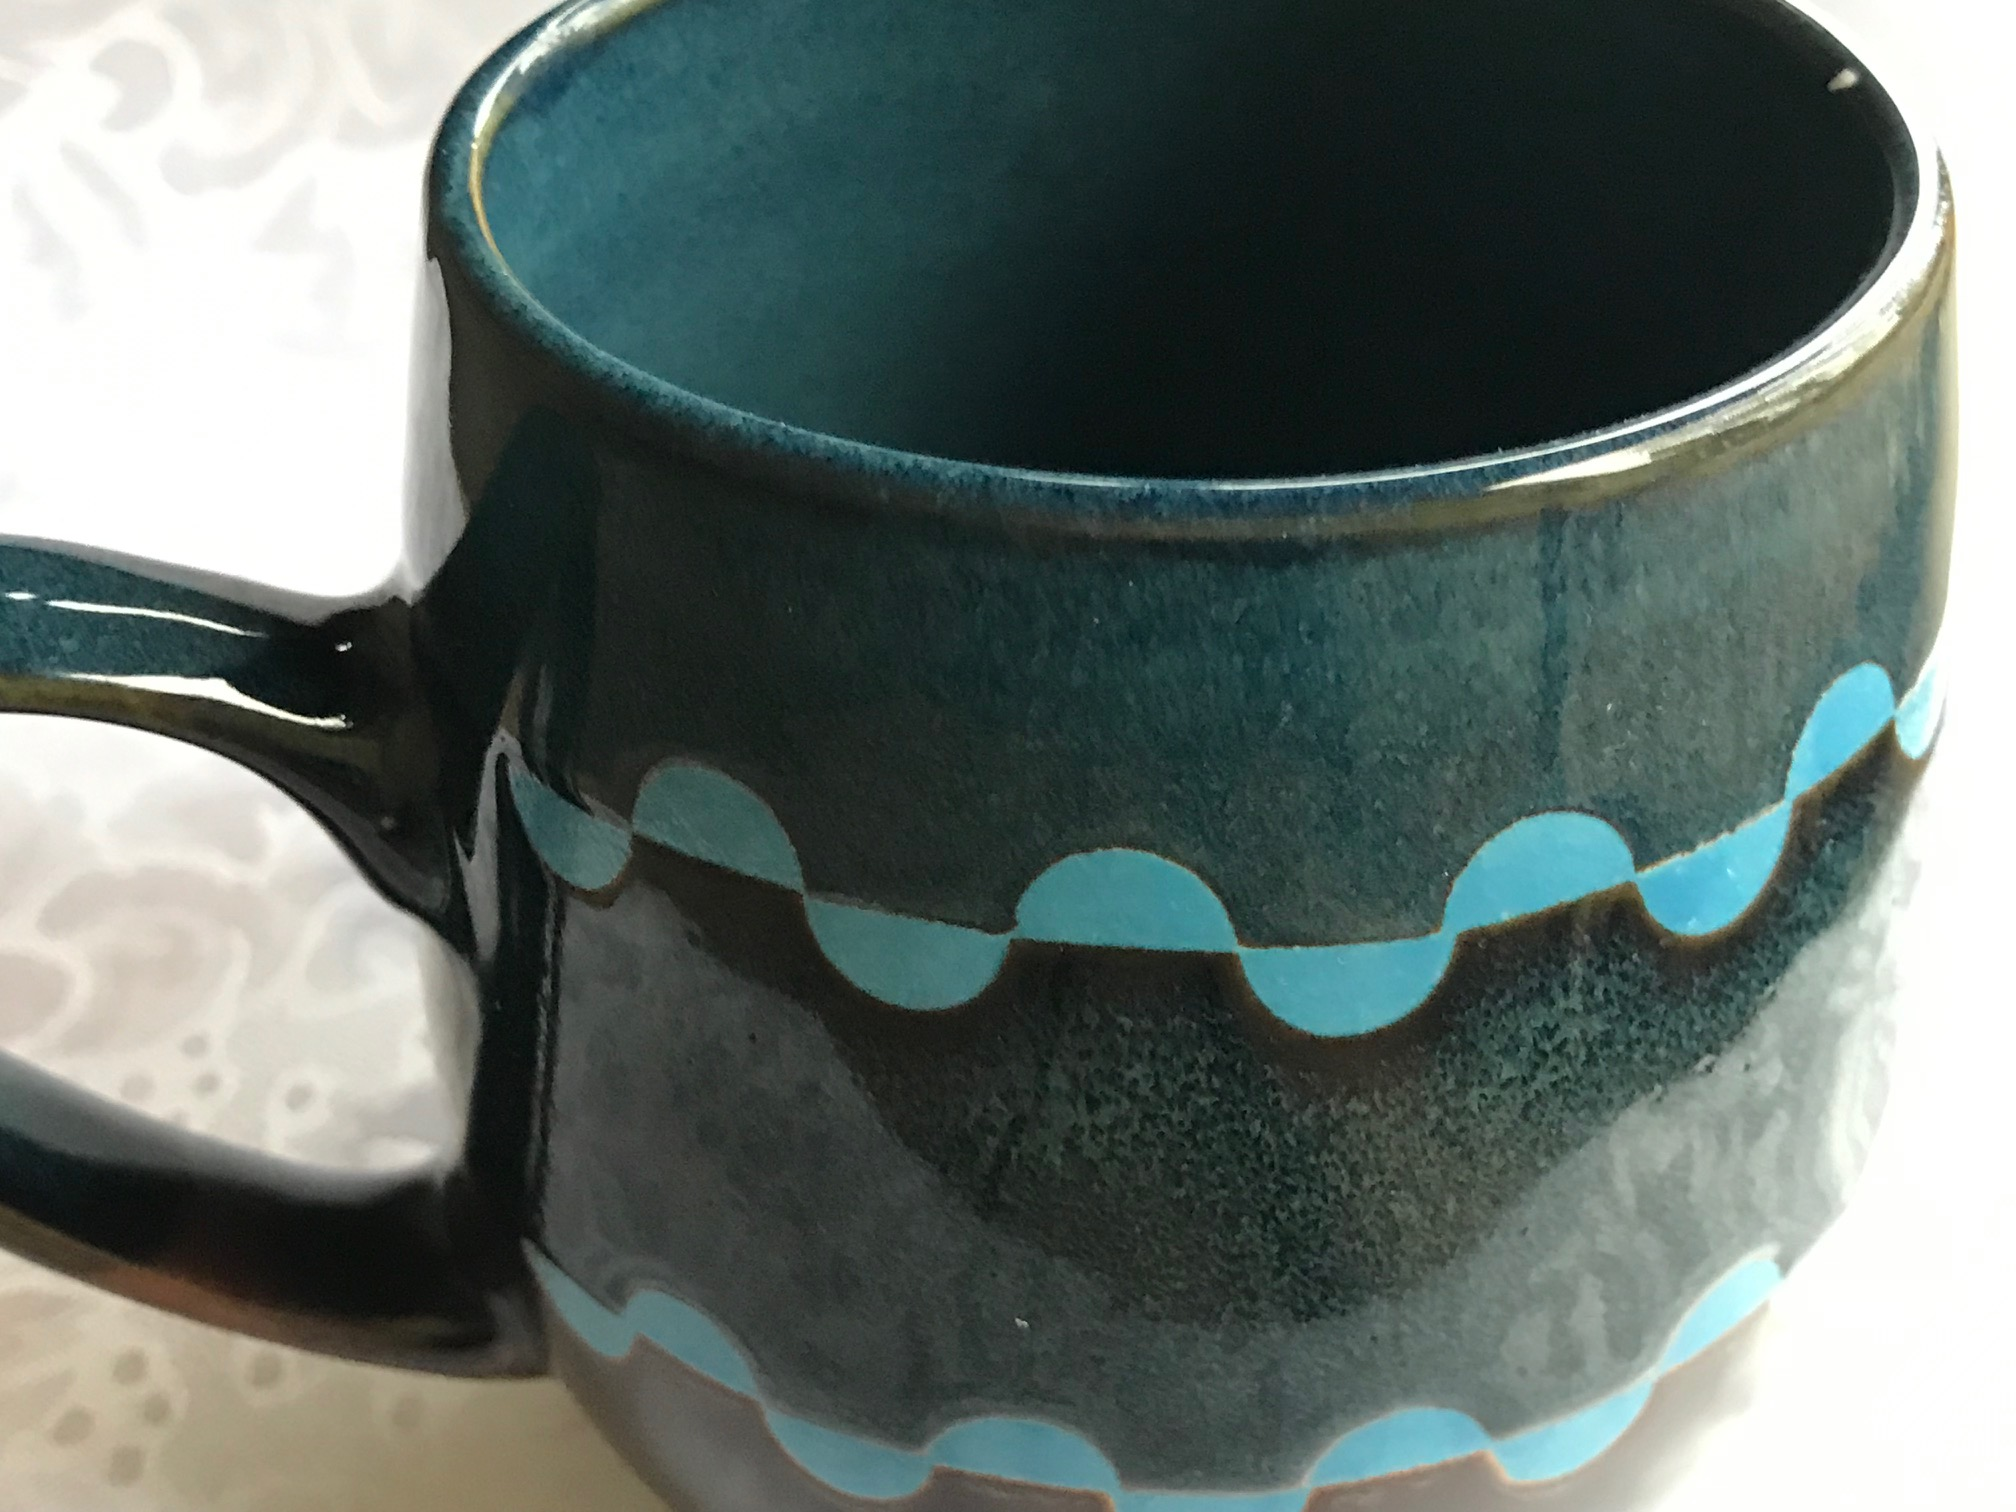 Dema Designs Romsey Brown and Blue Ceramic Mug: 29 ppm Lead (Lead-Safe)